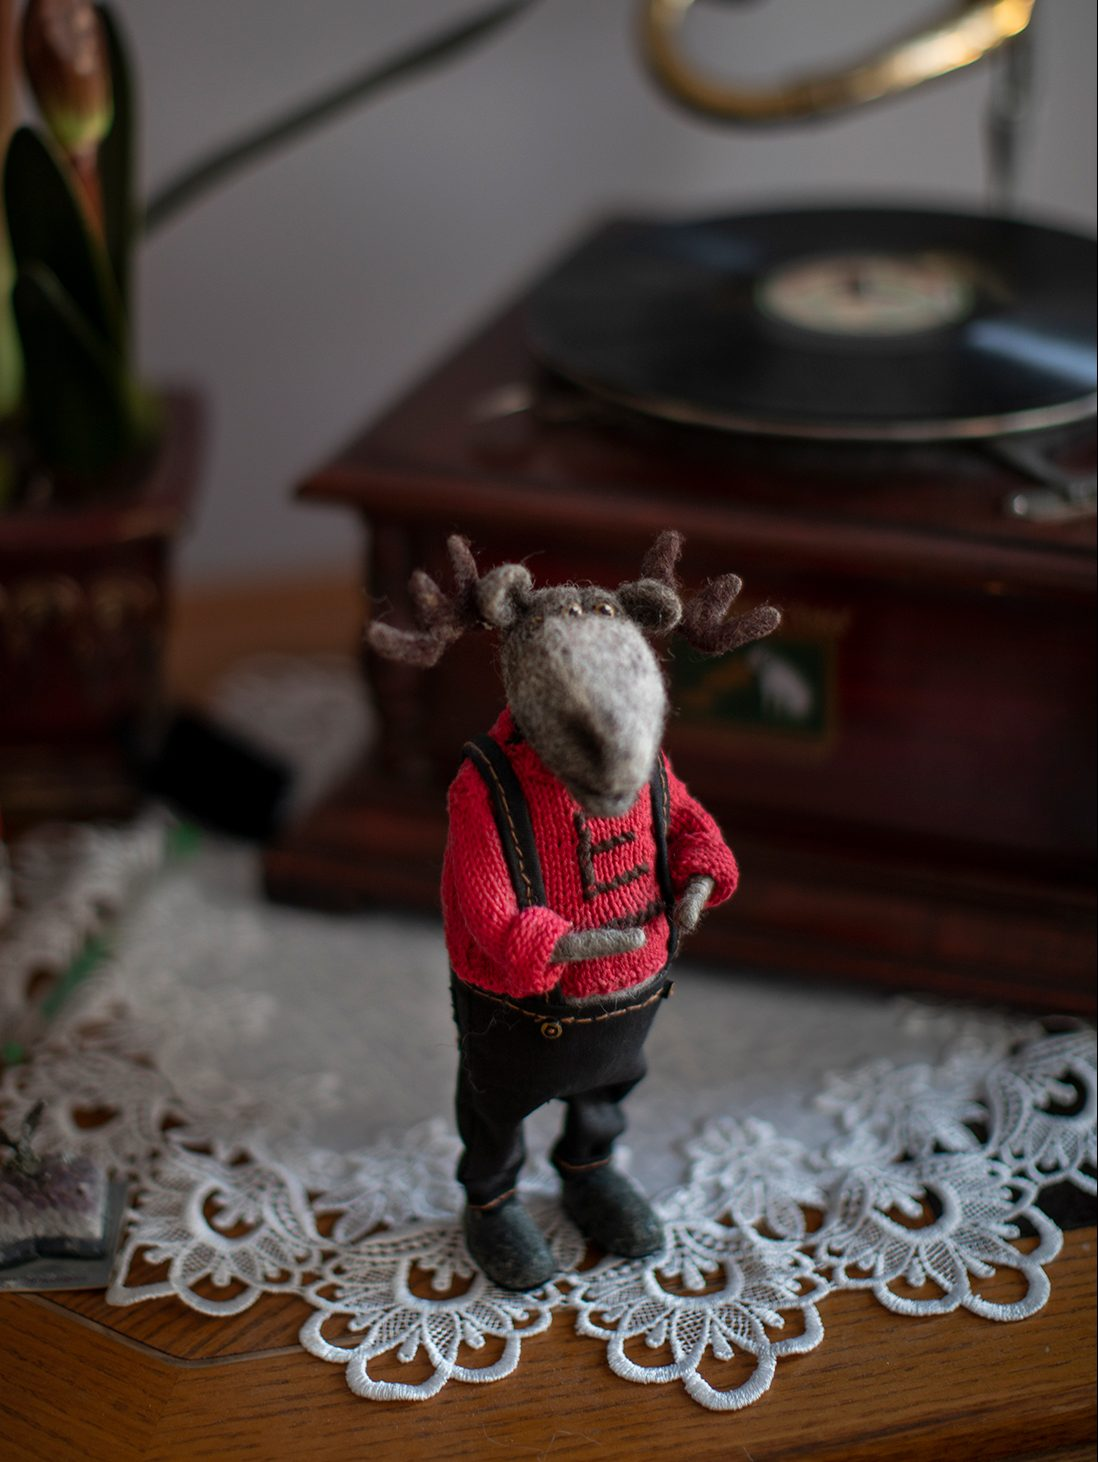 A moose stands on a wooden table next to a gramophone.